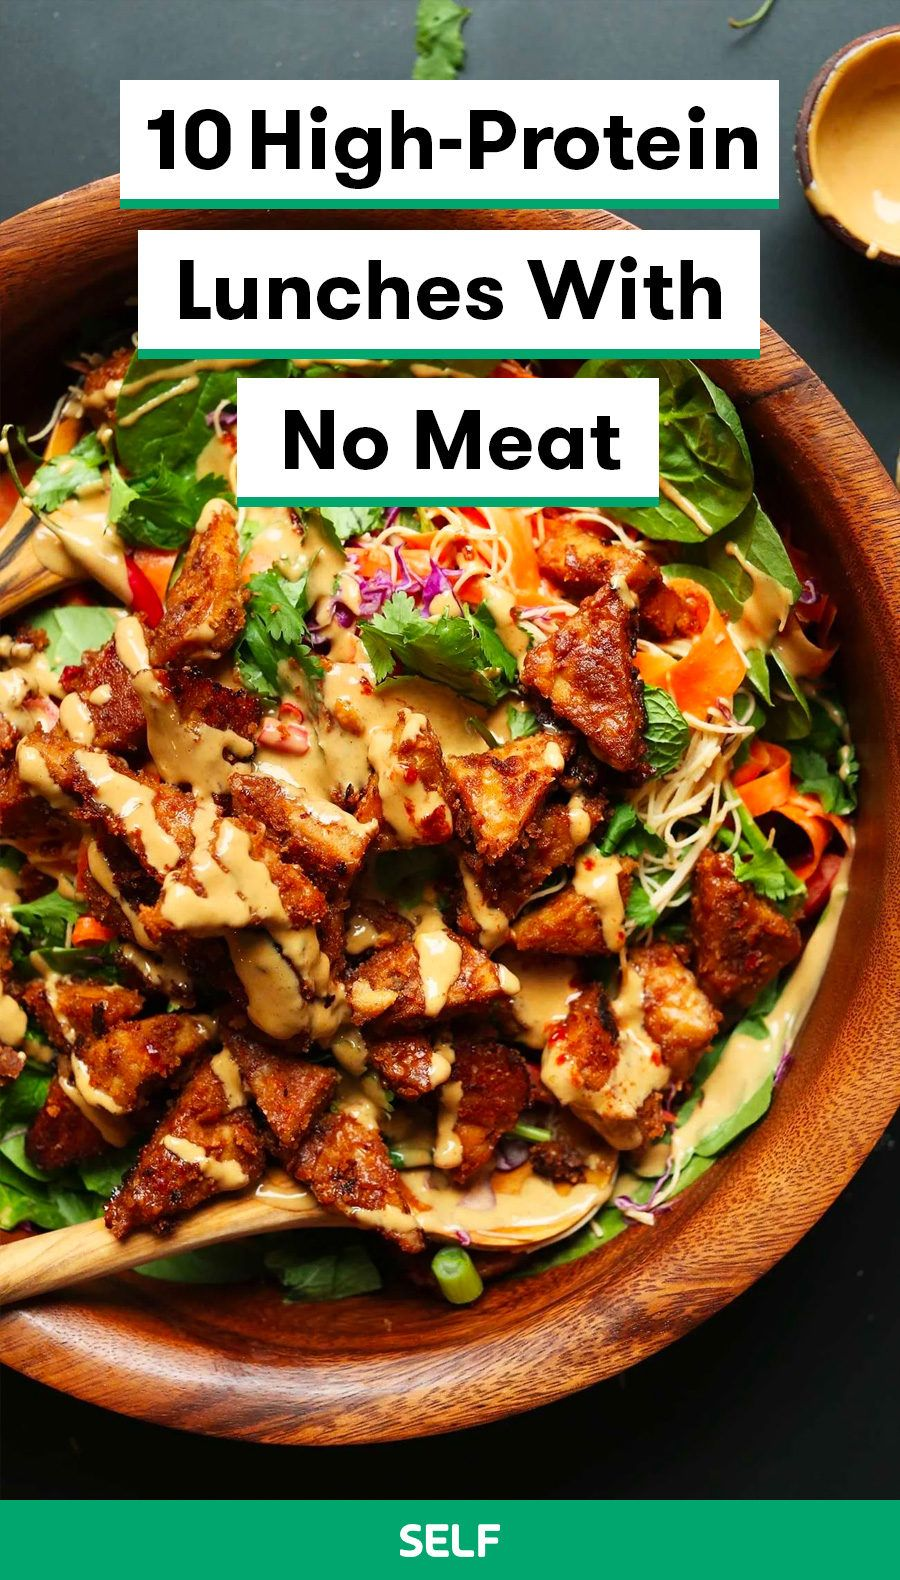 10 High Protein Lunches With No Meat In 2020 High Protein Vegetarian Recipes Protein Lunch Protein Packed Meals